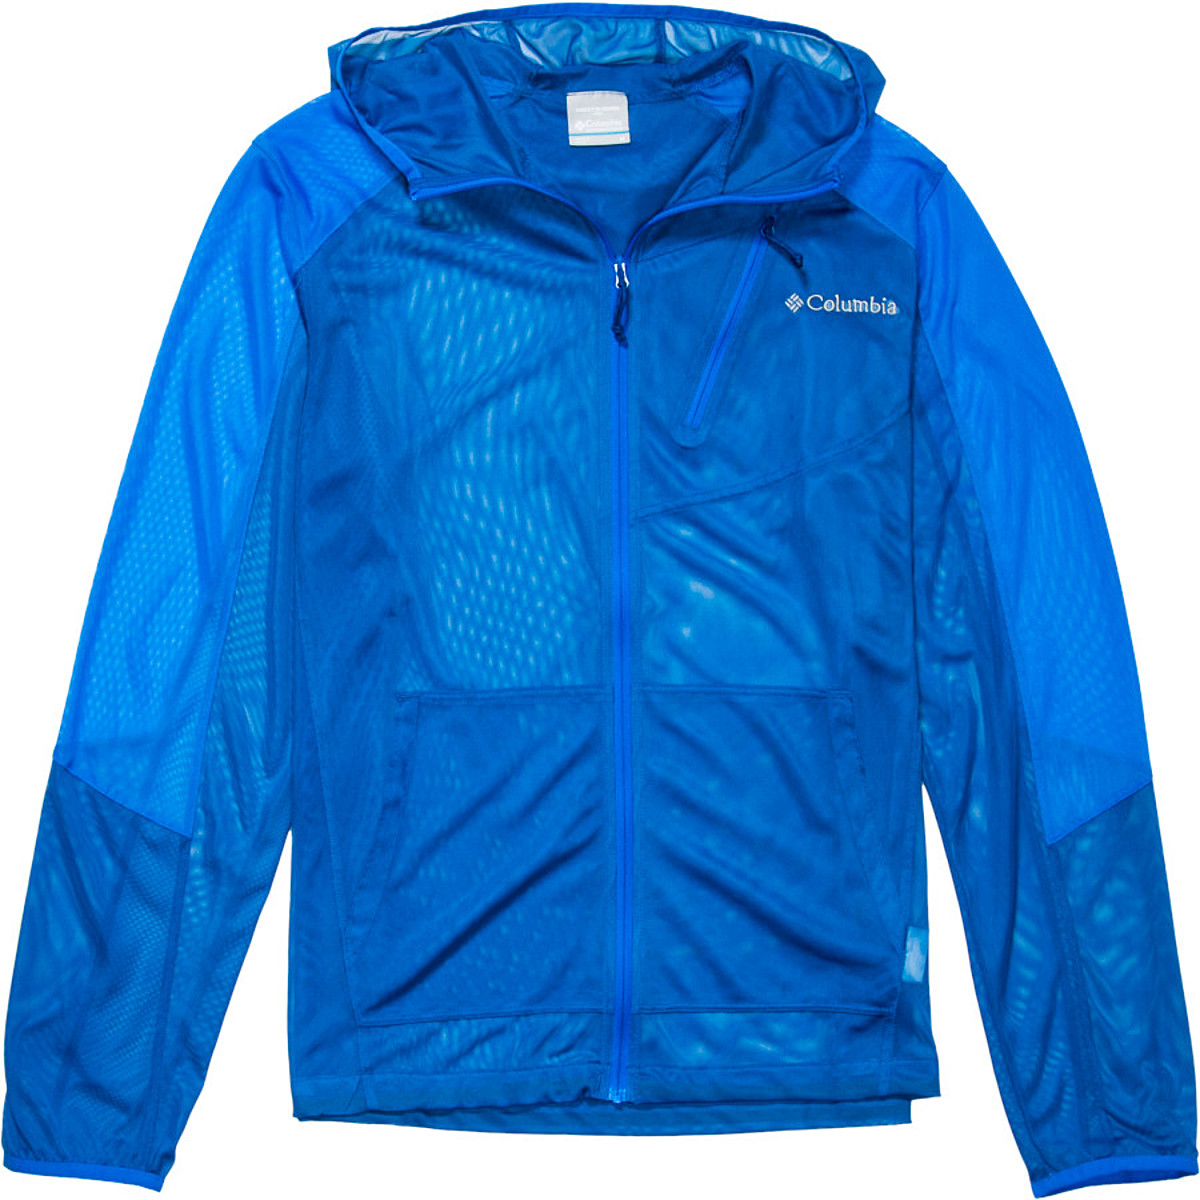 photo: Columbia Men's Bug Shield Mesh Jacket jacket